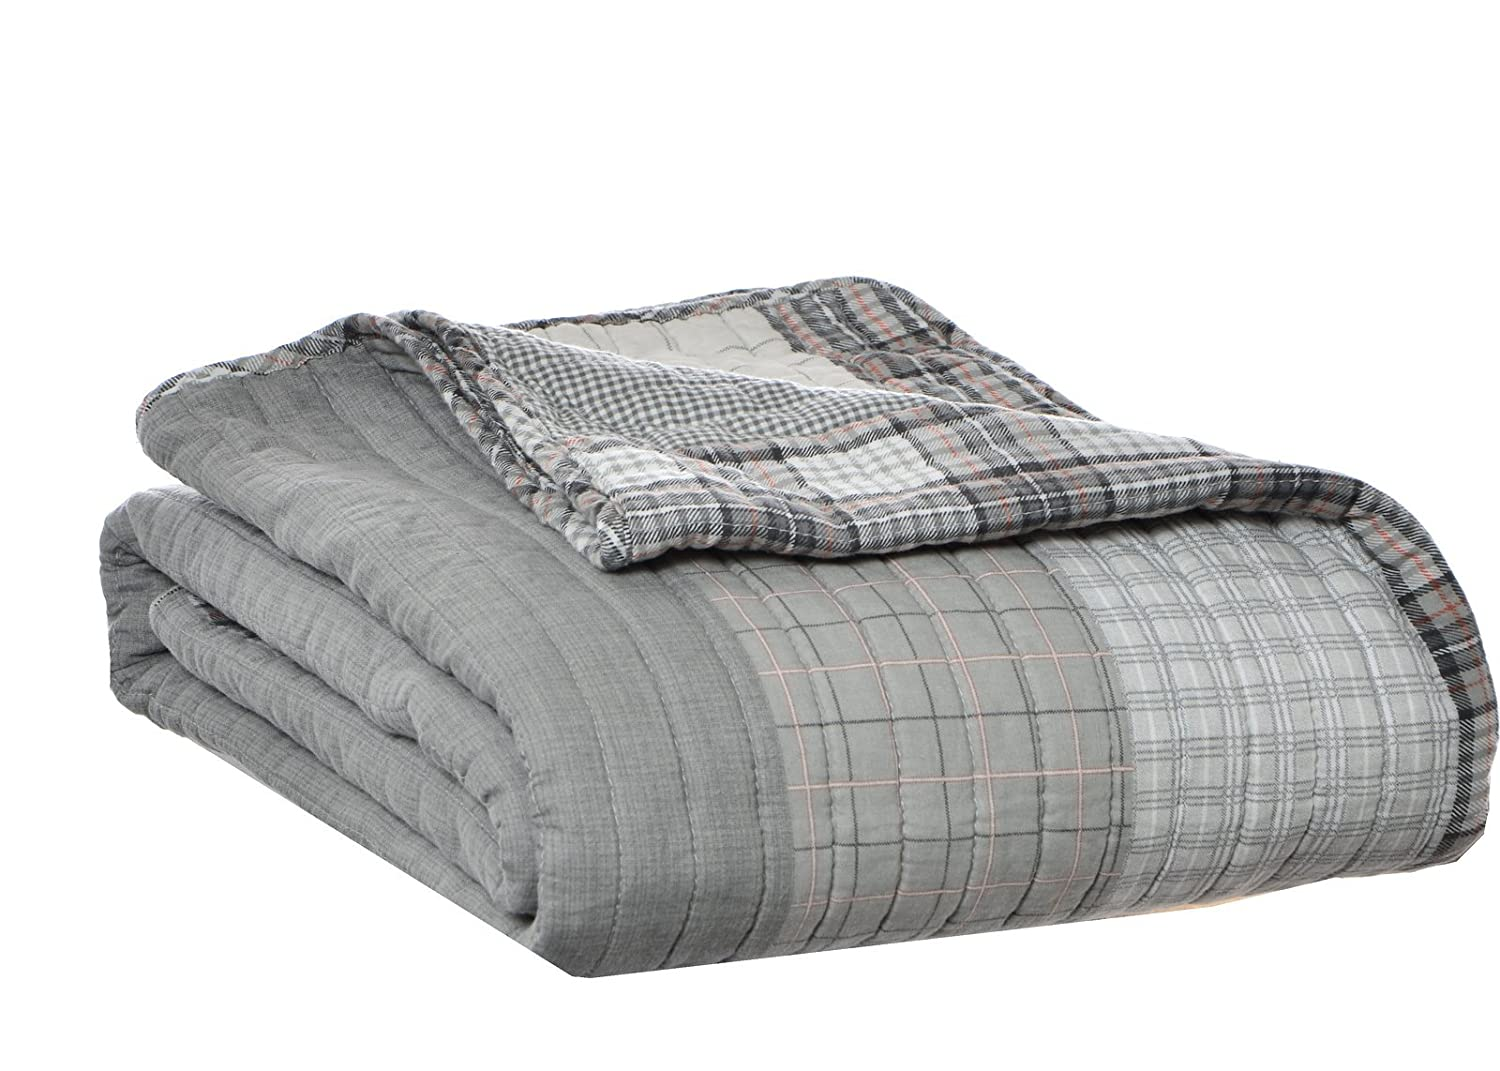 amazoncom eddie bauer fairview quilted cotton throw blanket home kitchen. amazoncom eddie bauer fairview quilted cotton throw blanket